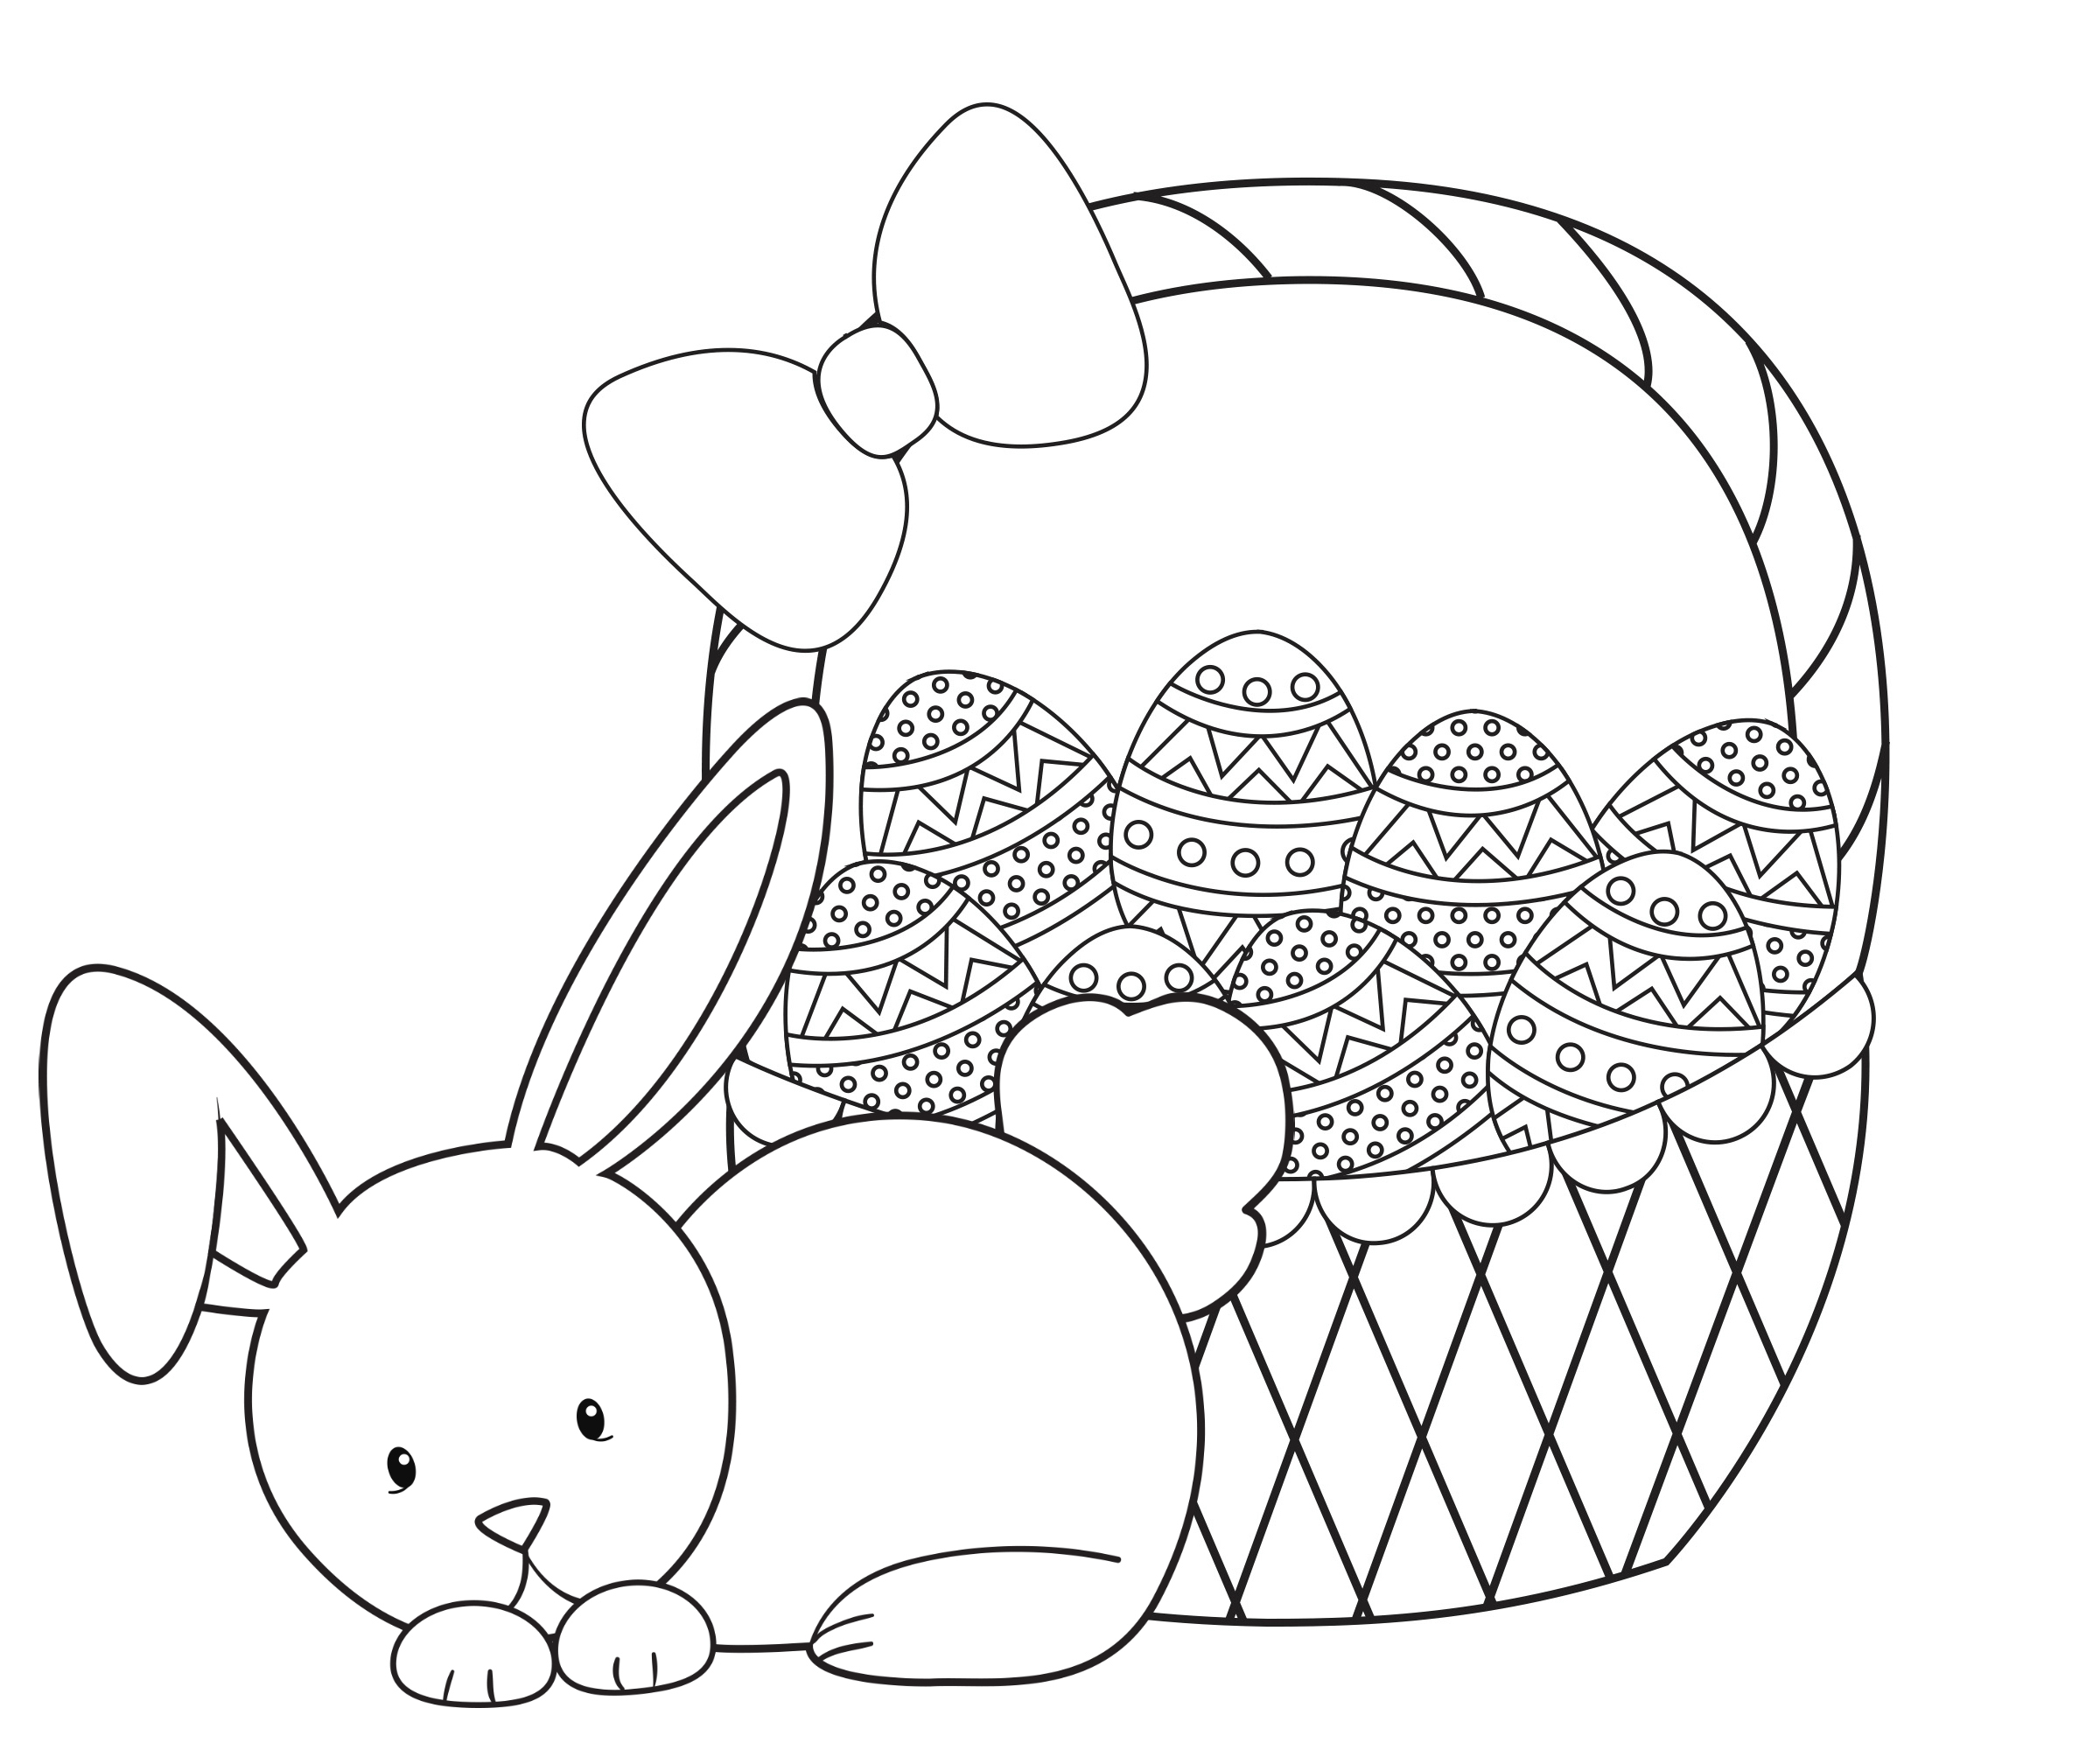 Easter Coloring Pages for Kids Crazy Little Projects Printable Of Bunny Egg by Rustchic Bucket Printable